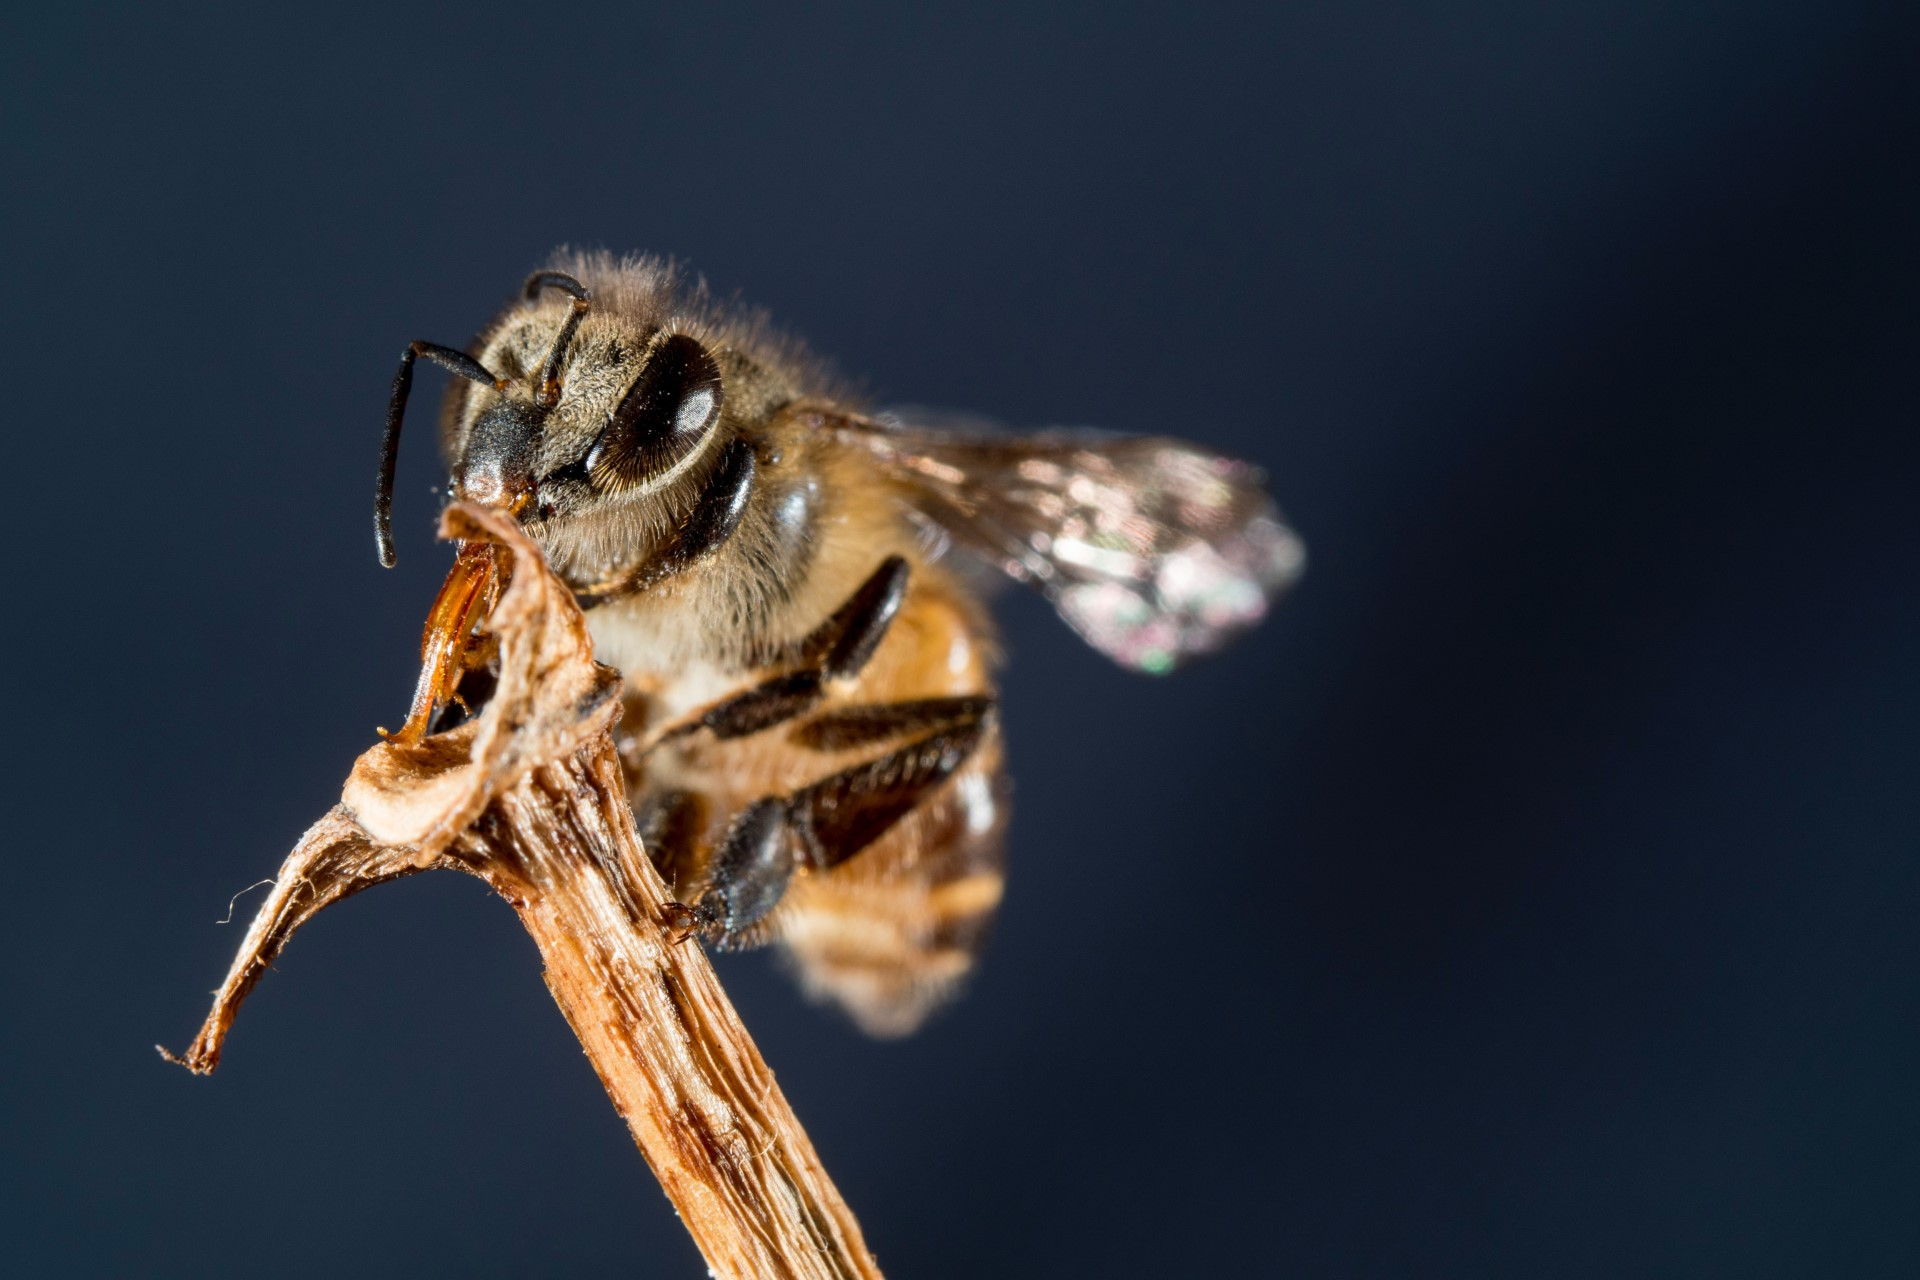 Beyond the Honeybee: Fighting of Behalf of Pollinators | Honeybees are a critical species, but that doesn't mean they deserve the whole limelight.